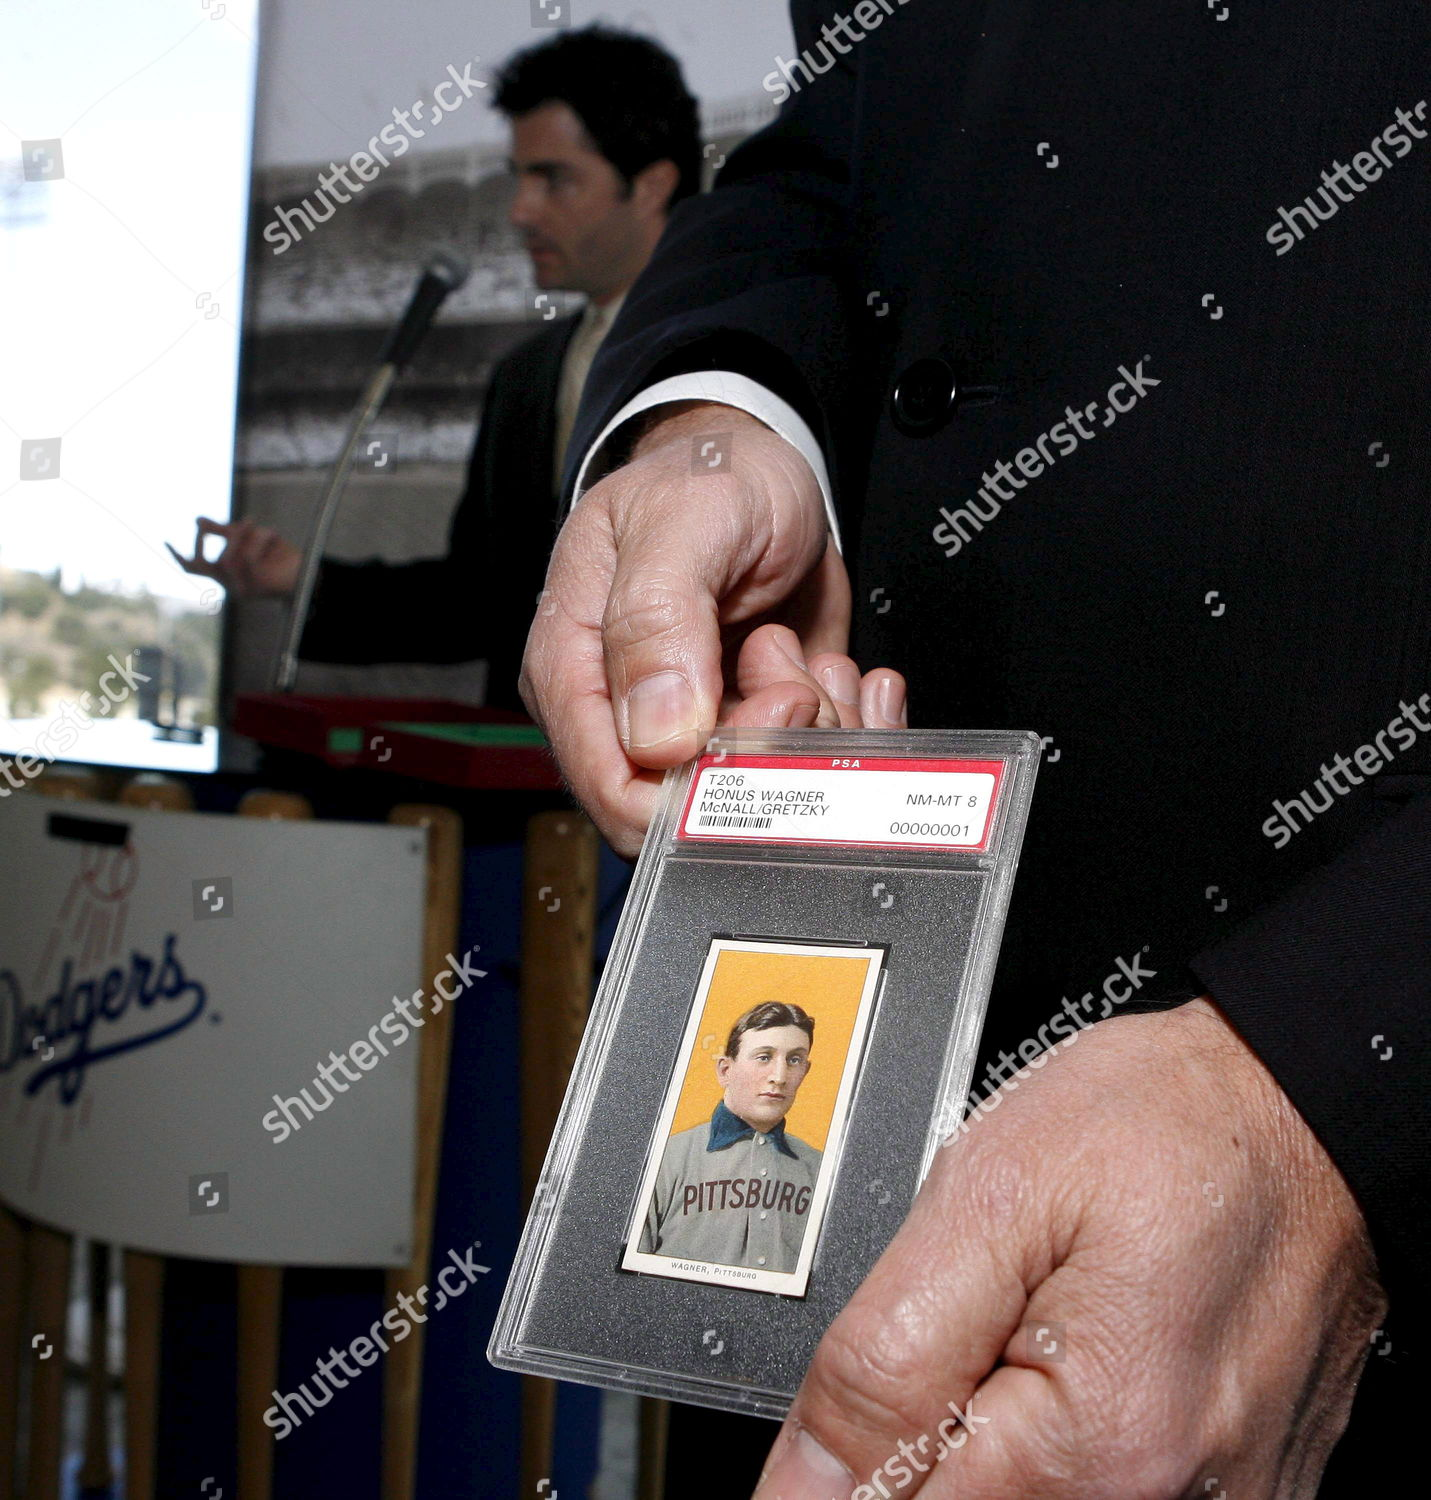 T206 Honus Wagner Baseball Card Displayed By Editorial Stock Photo